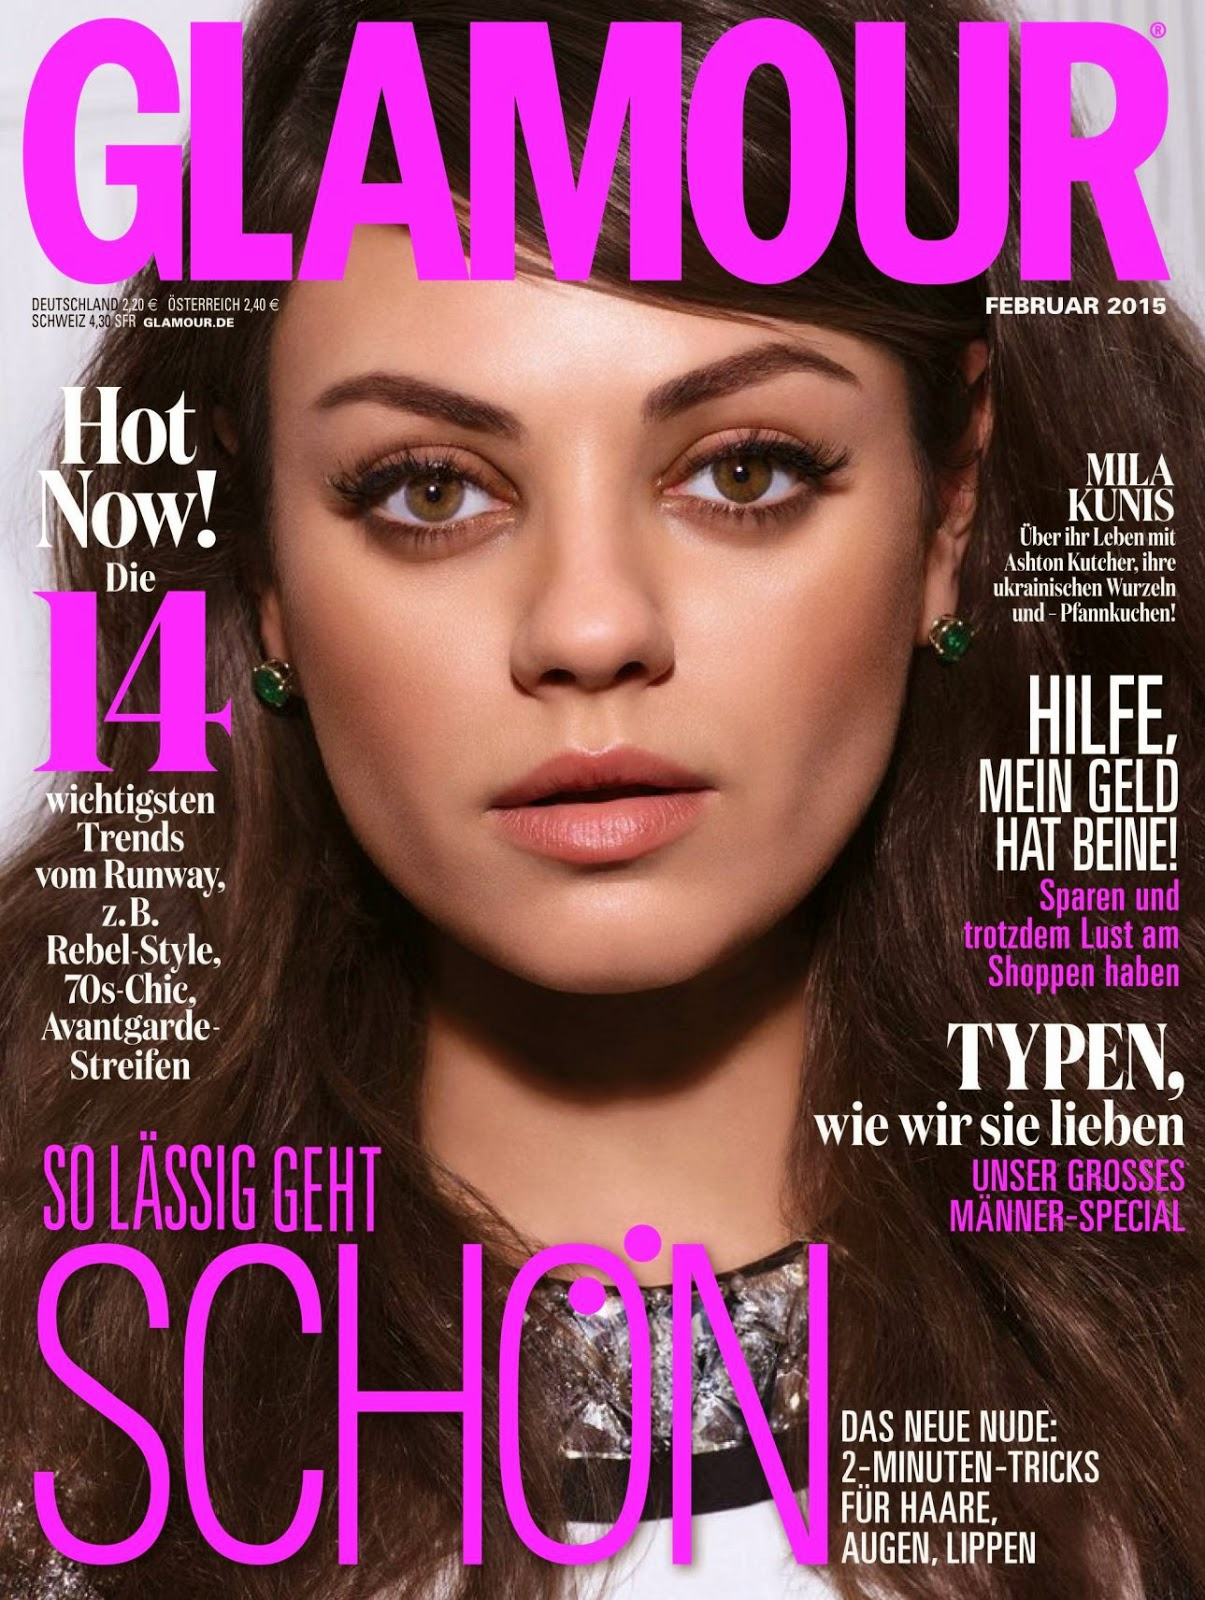 Mila Kunis - Glamour, Germany, February 2015